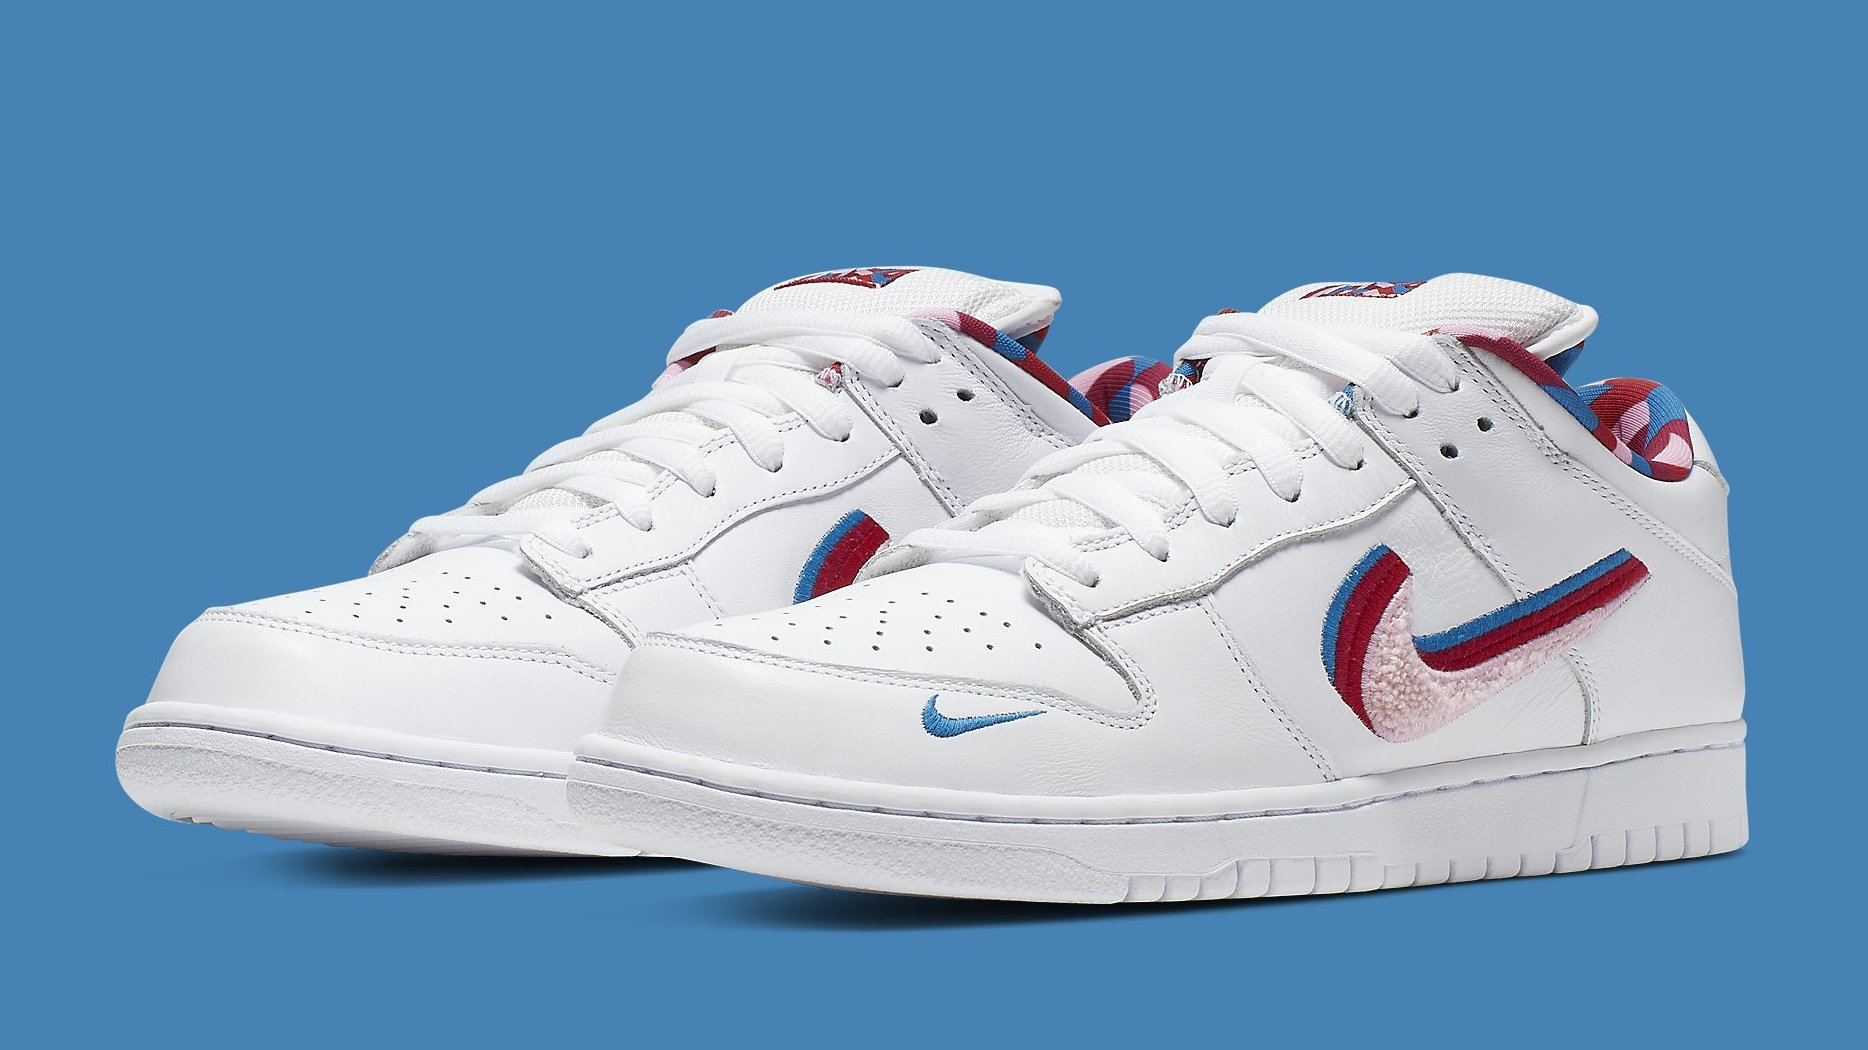 best deals on pretty cool pretty cool Parra x Nike SB Dunk Low Release Date | Sole Collector